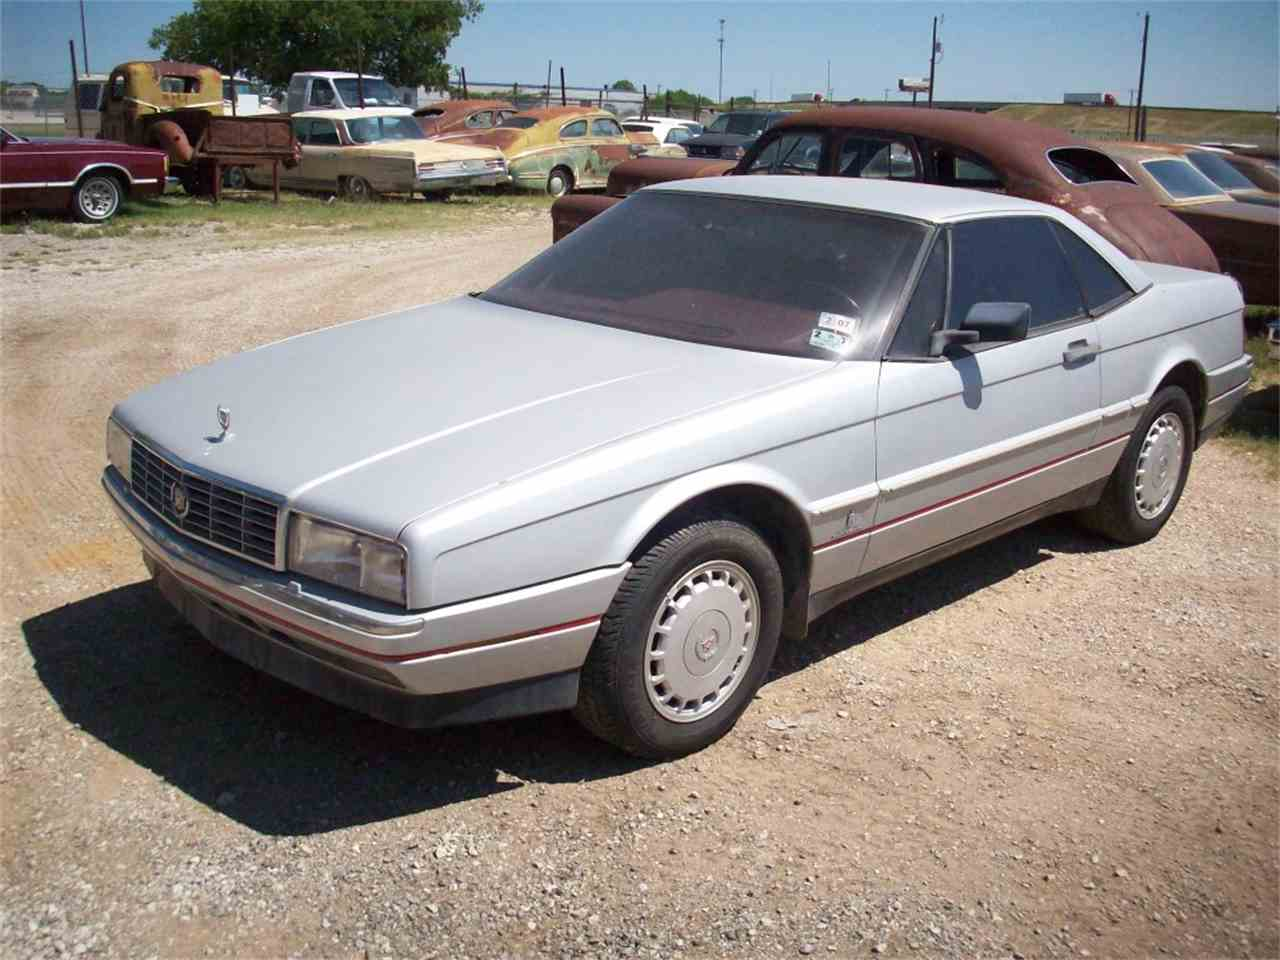 1987 Cadillac Allante for Sale - CC-1009025